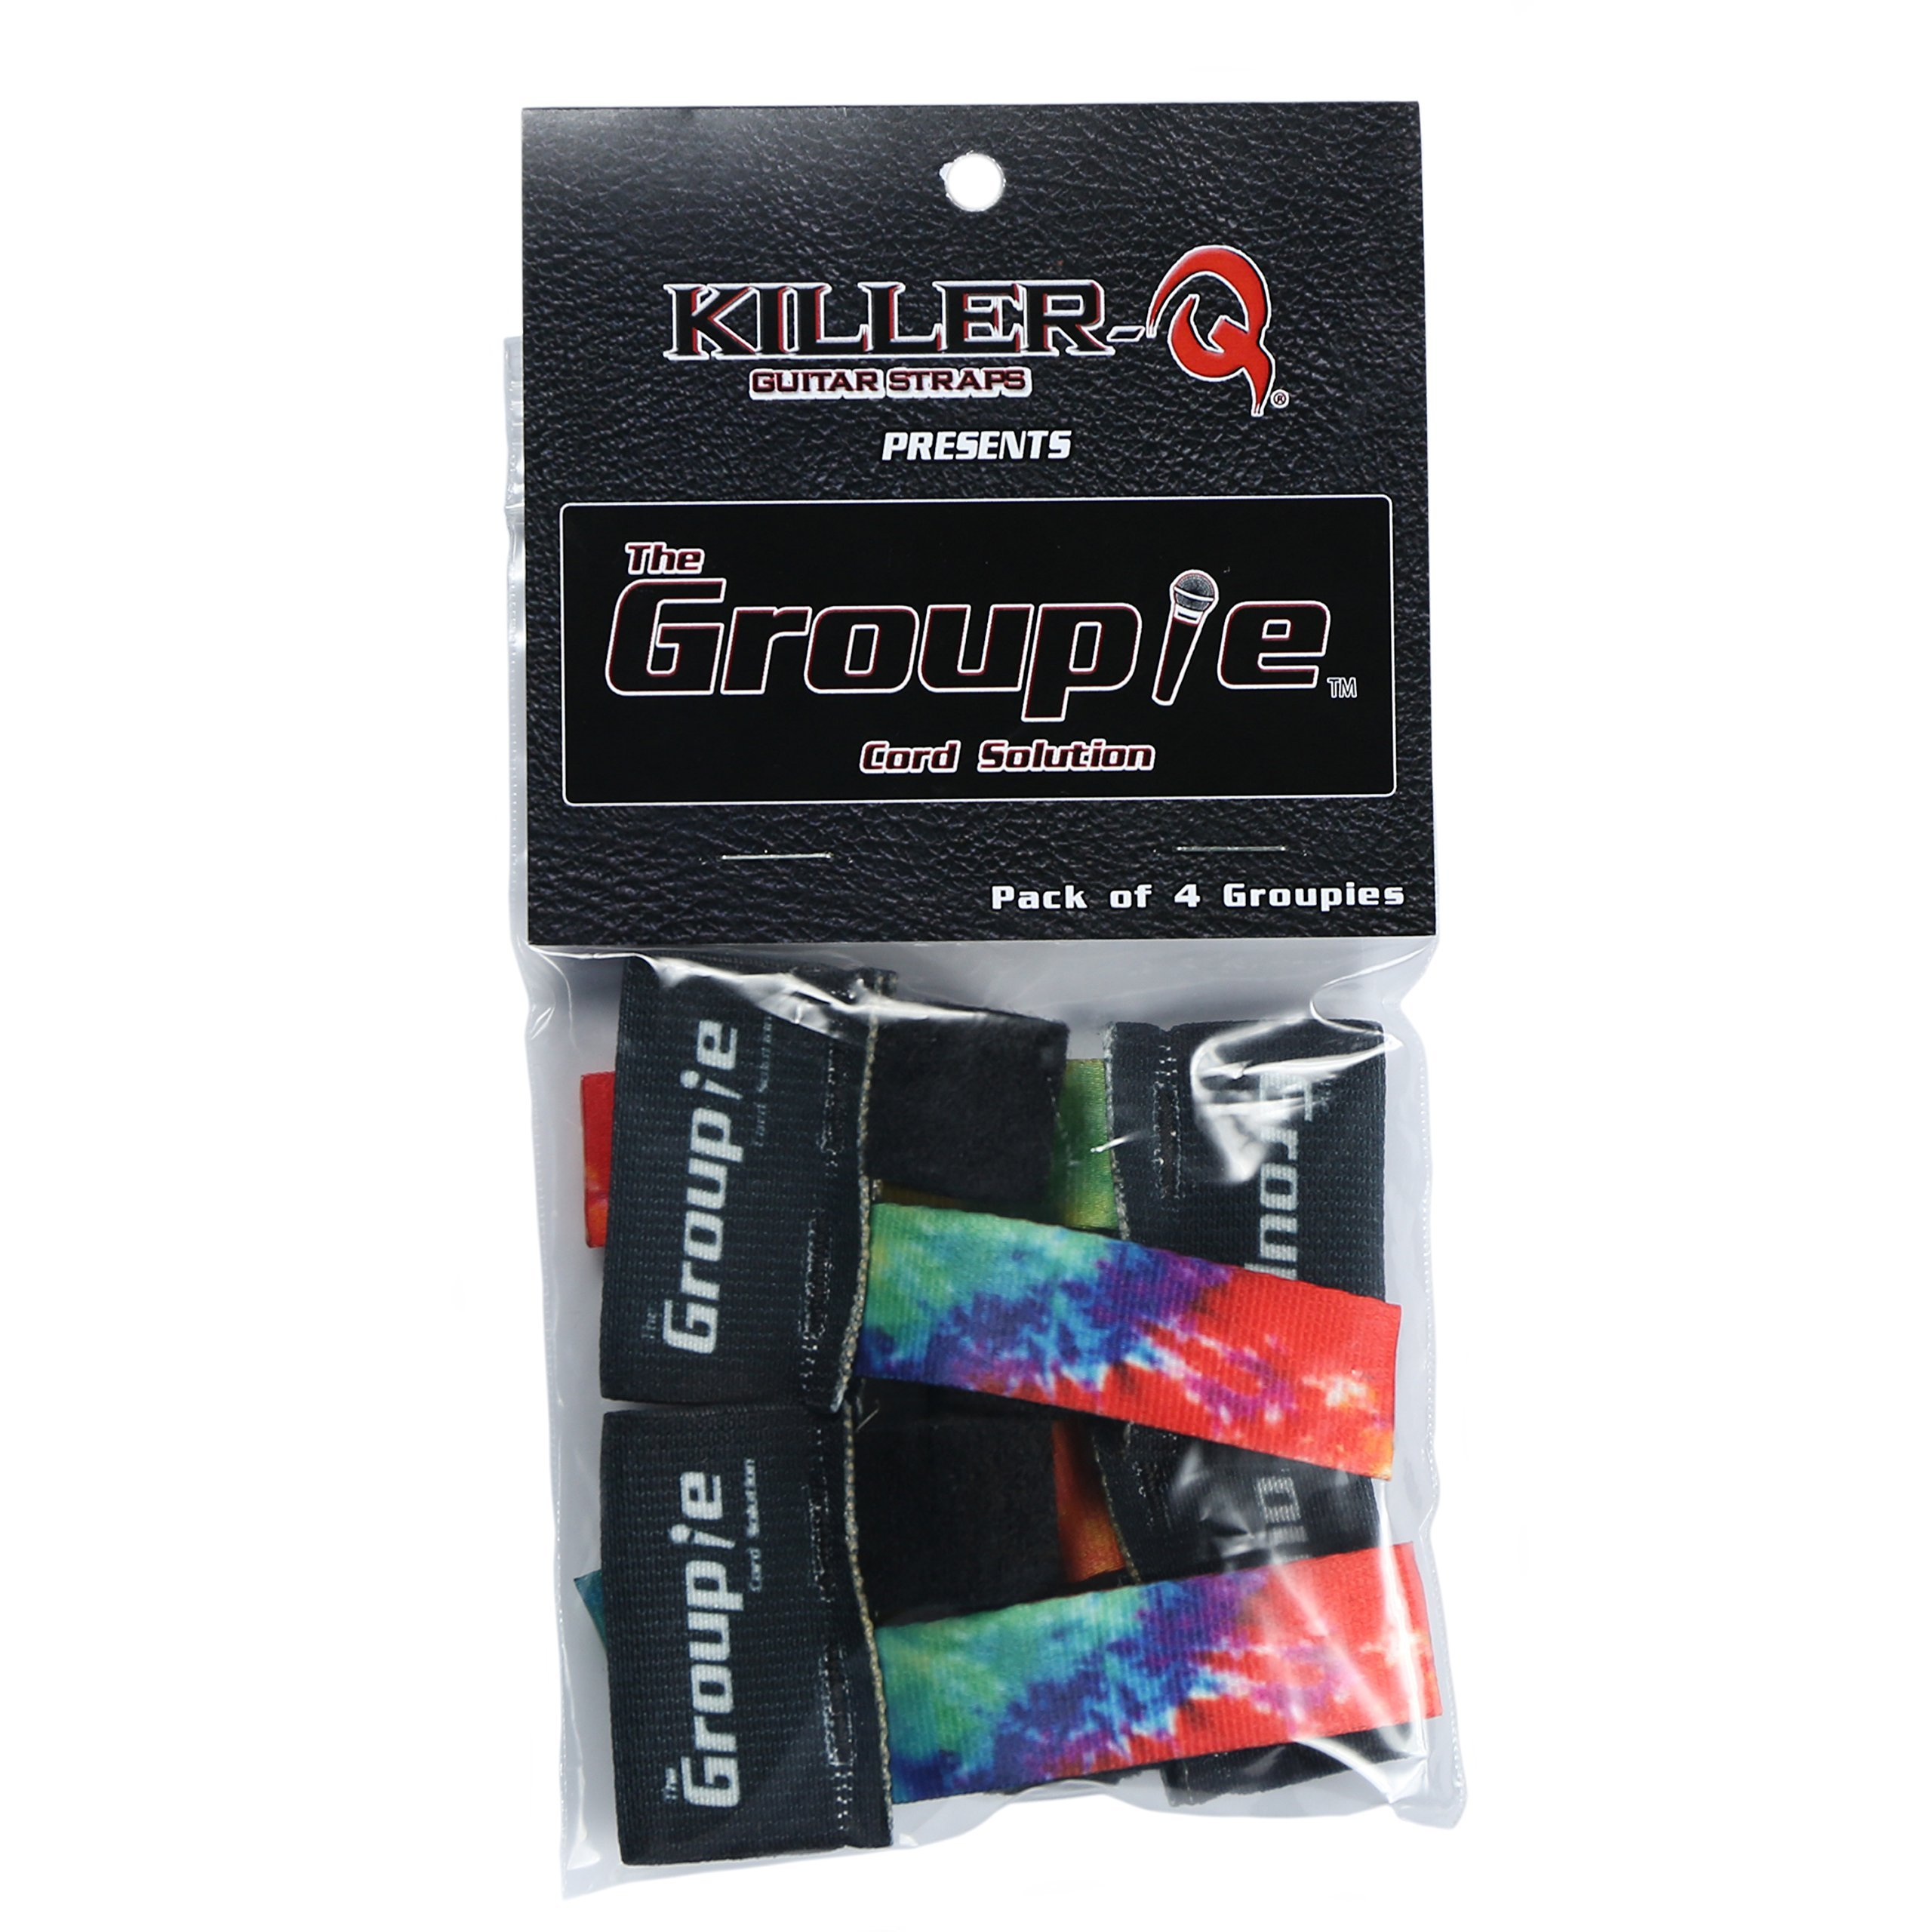 Killer-Q Guitar Cable Organizer System - The Groupie Cord Keeper Tie Solution For Instruments, Audio Equipment – Tie Dye, 4 Pack